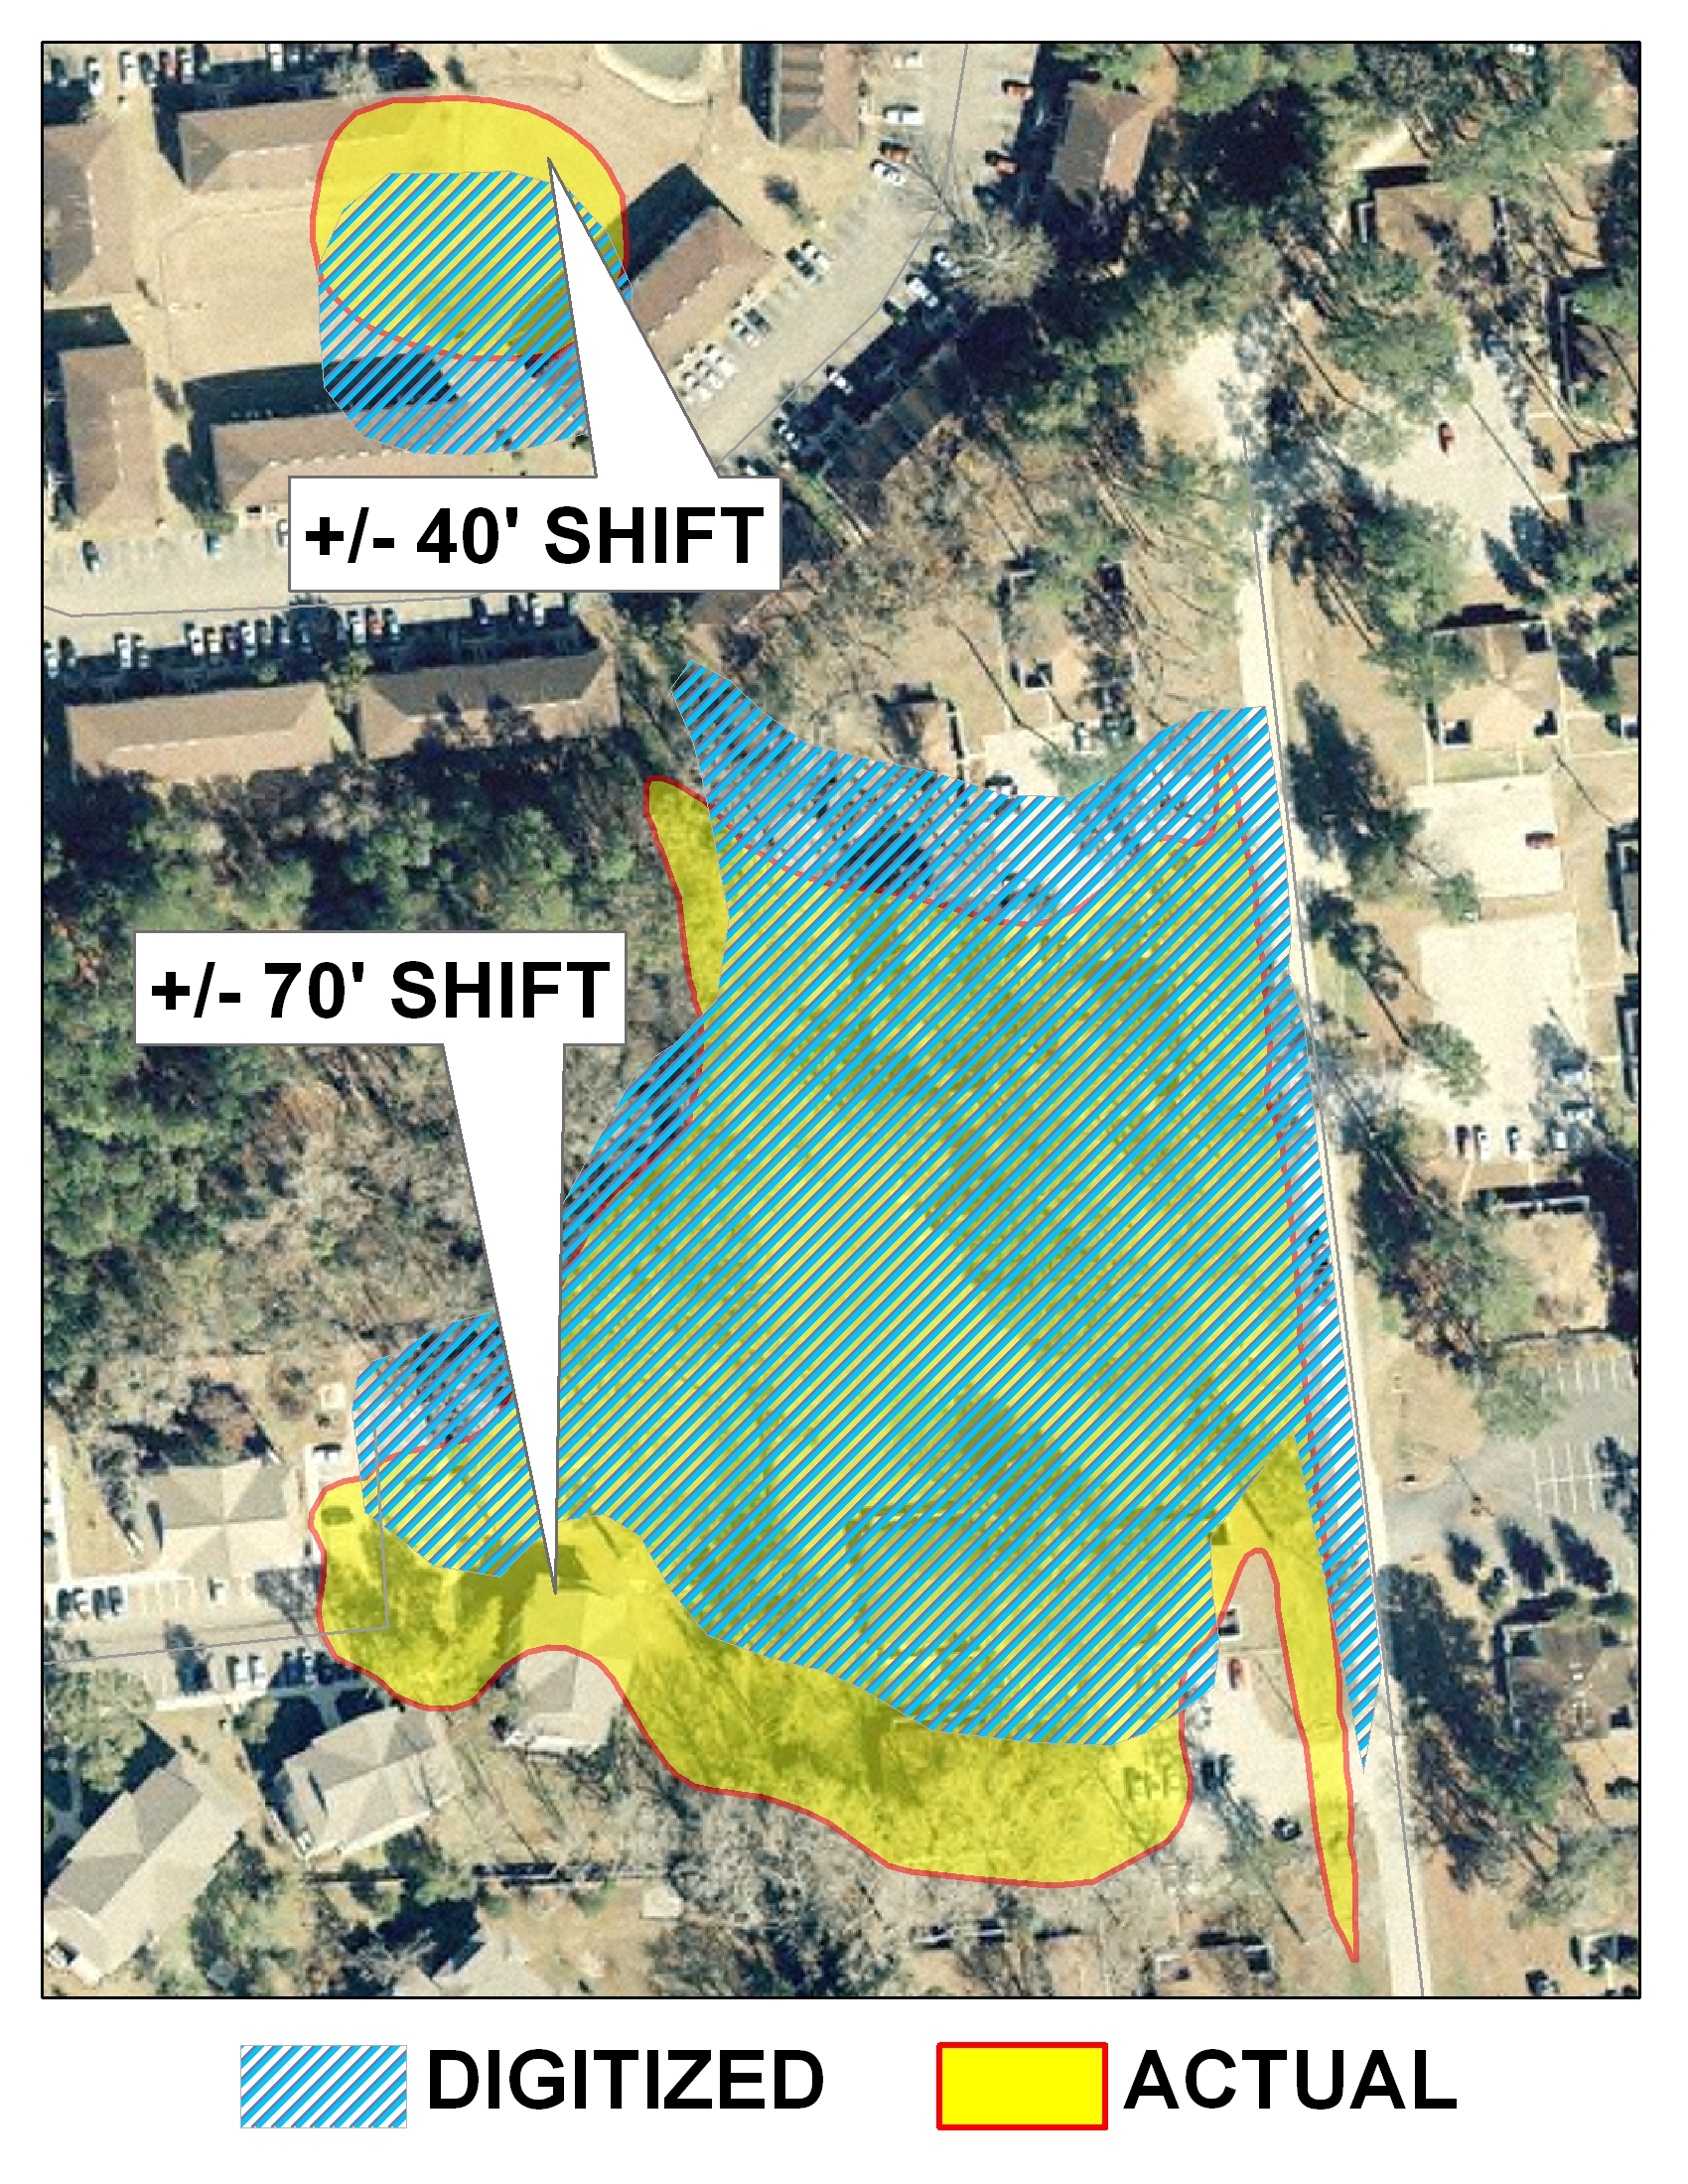 Apwa reporter floodplain mapping modernization a case history the comparison of firm flood zones to local information in the geographic information system indicates that misalignment has occurred during the processing publicscrutiny Gallery